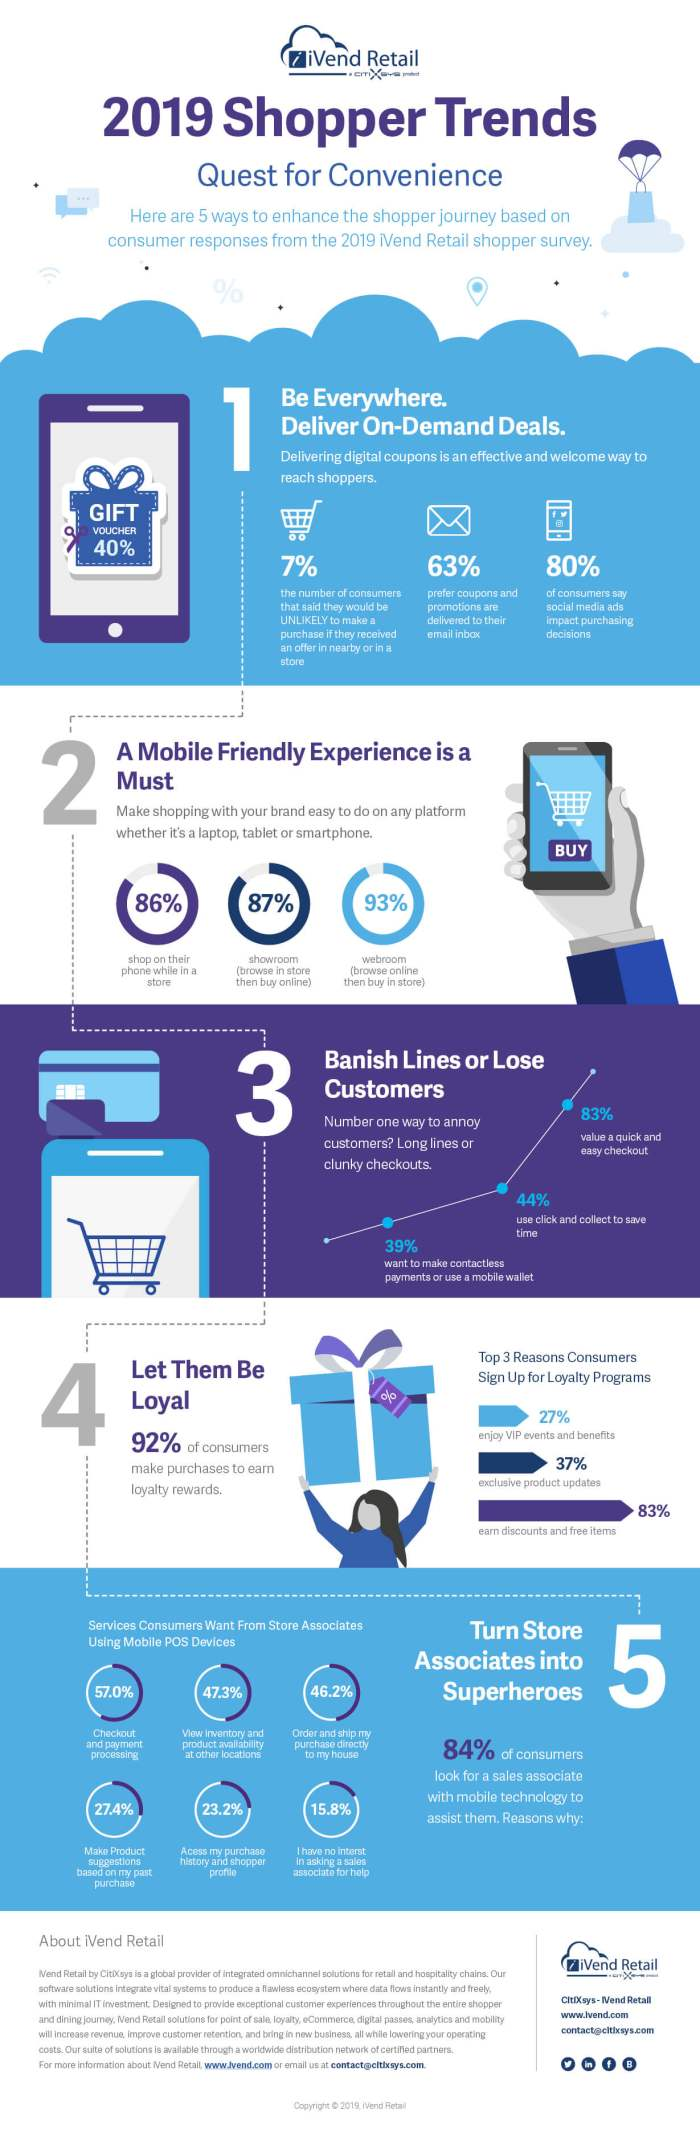 2019 Global Shopper Trends Infographic